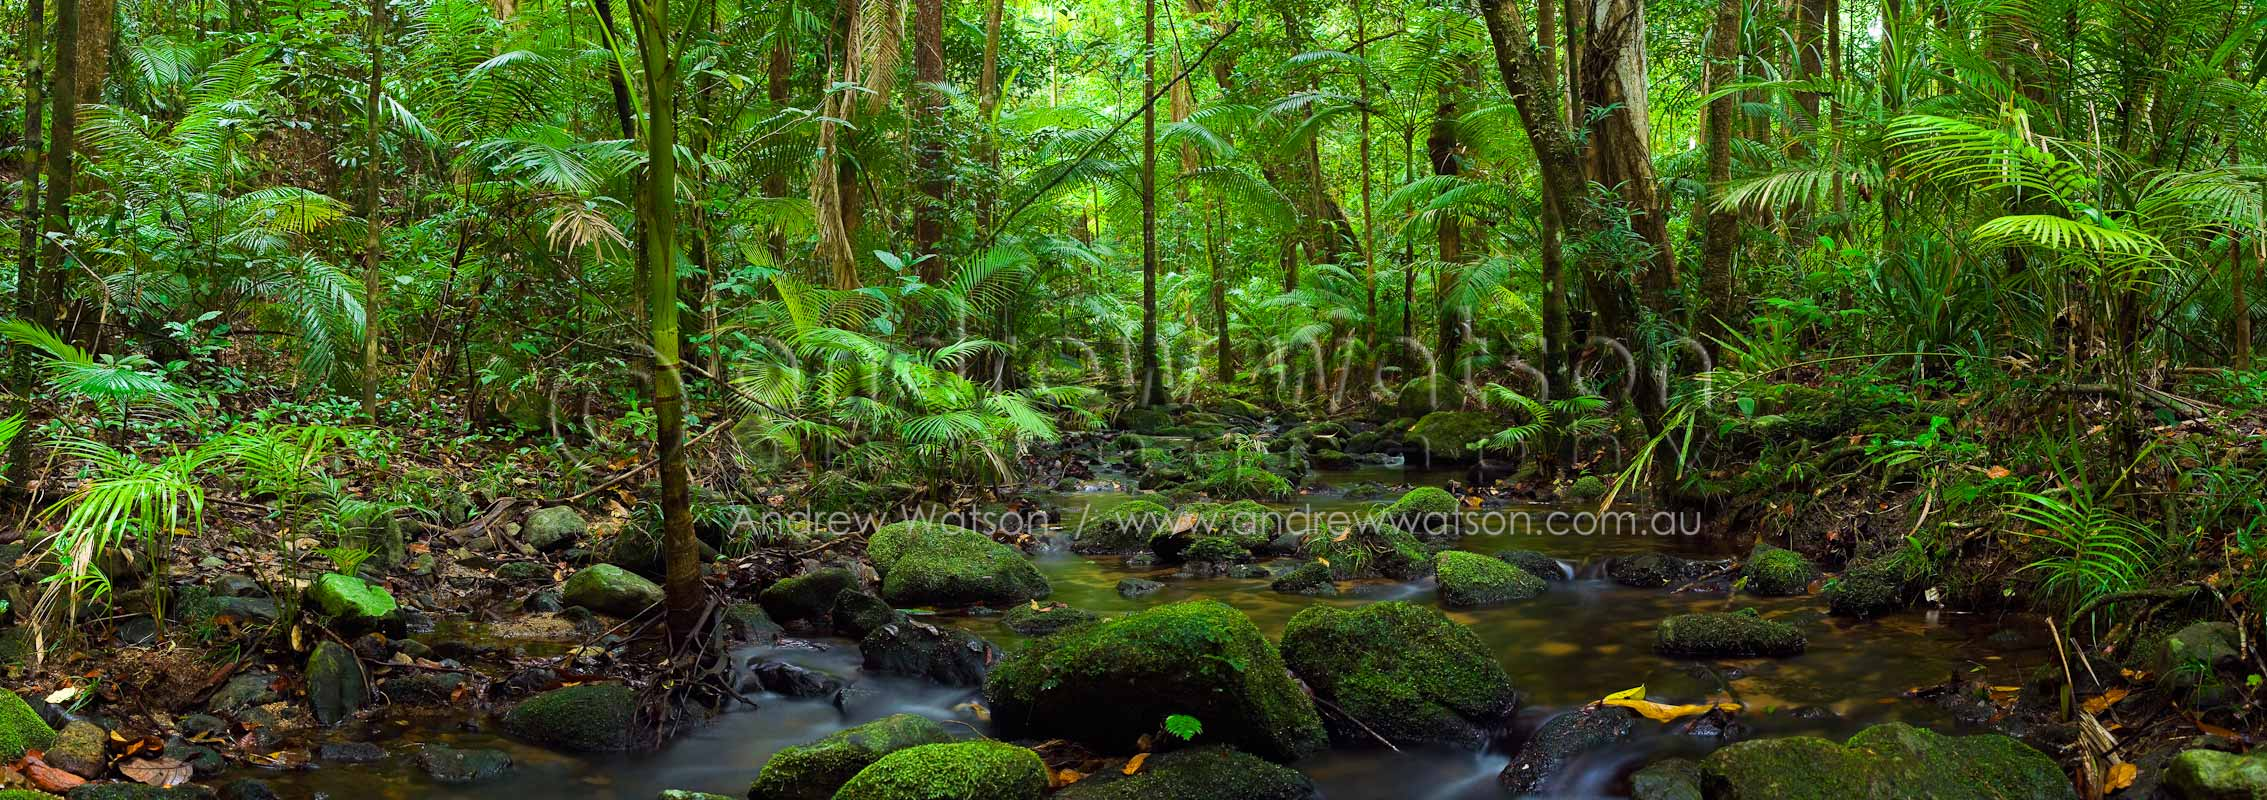 Panoramic image of a tropical rainforest stream in Daintree National Park